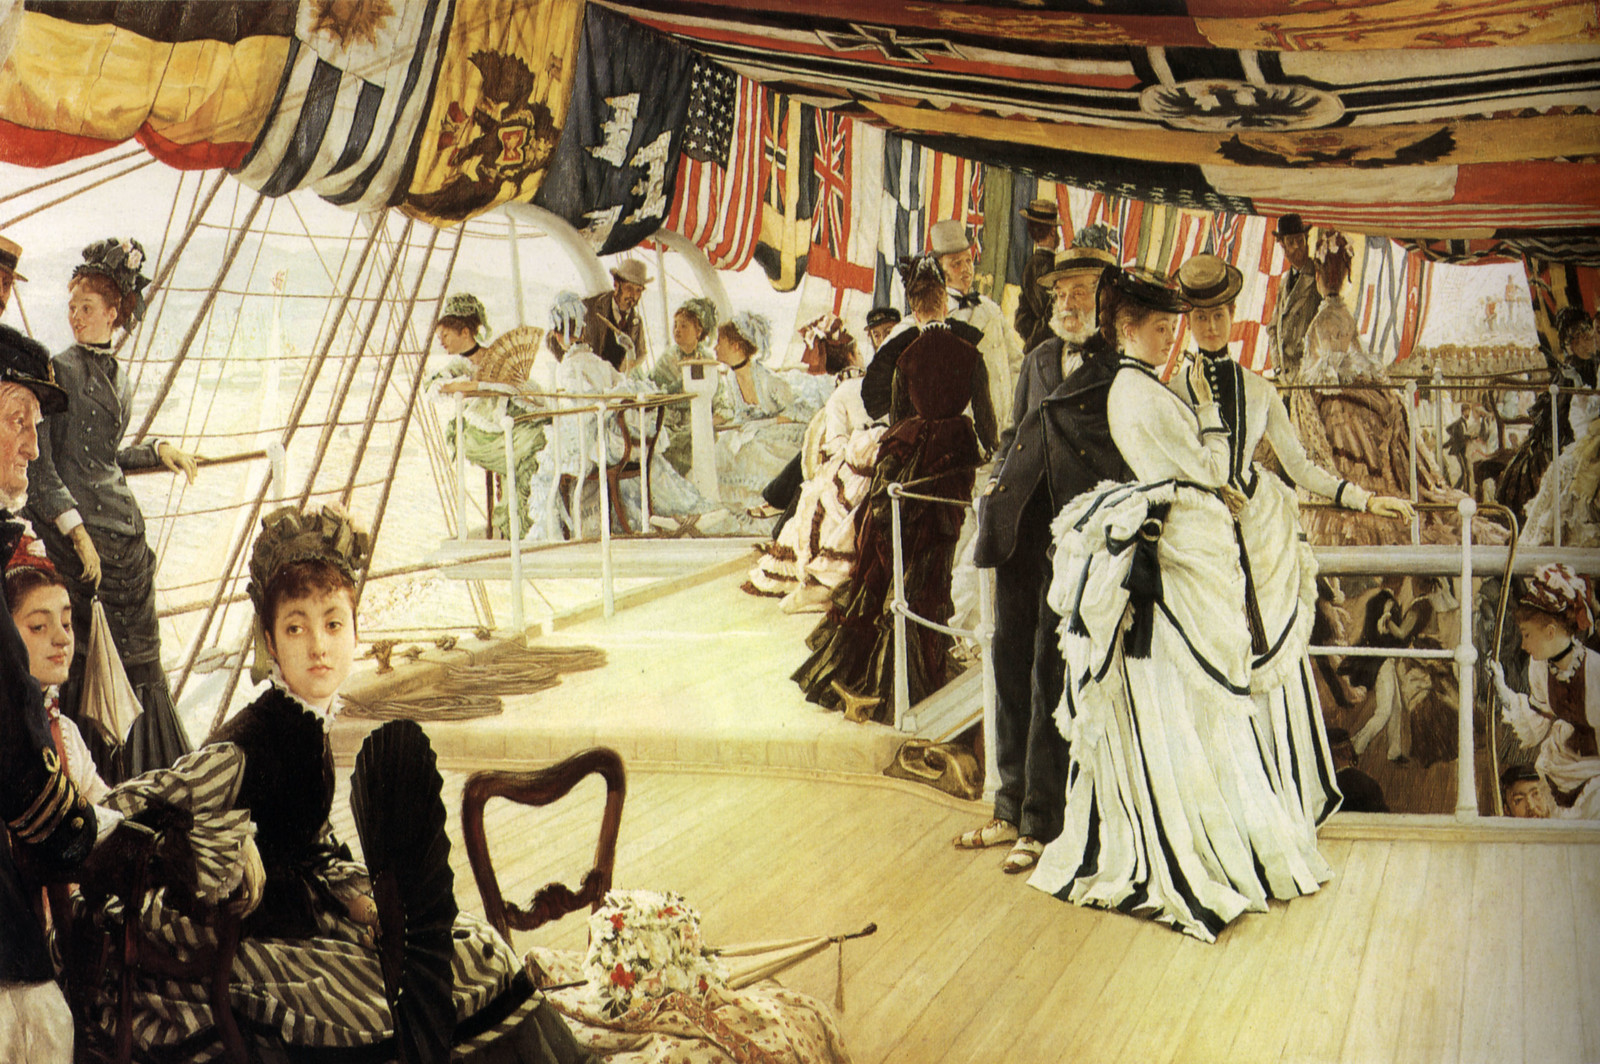 The Ball on Shipboard by James Tissot, 1874